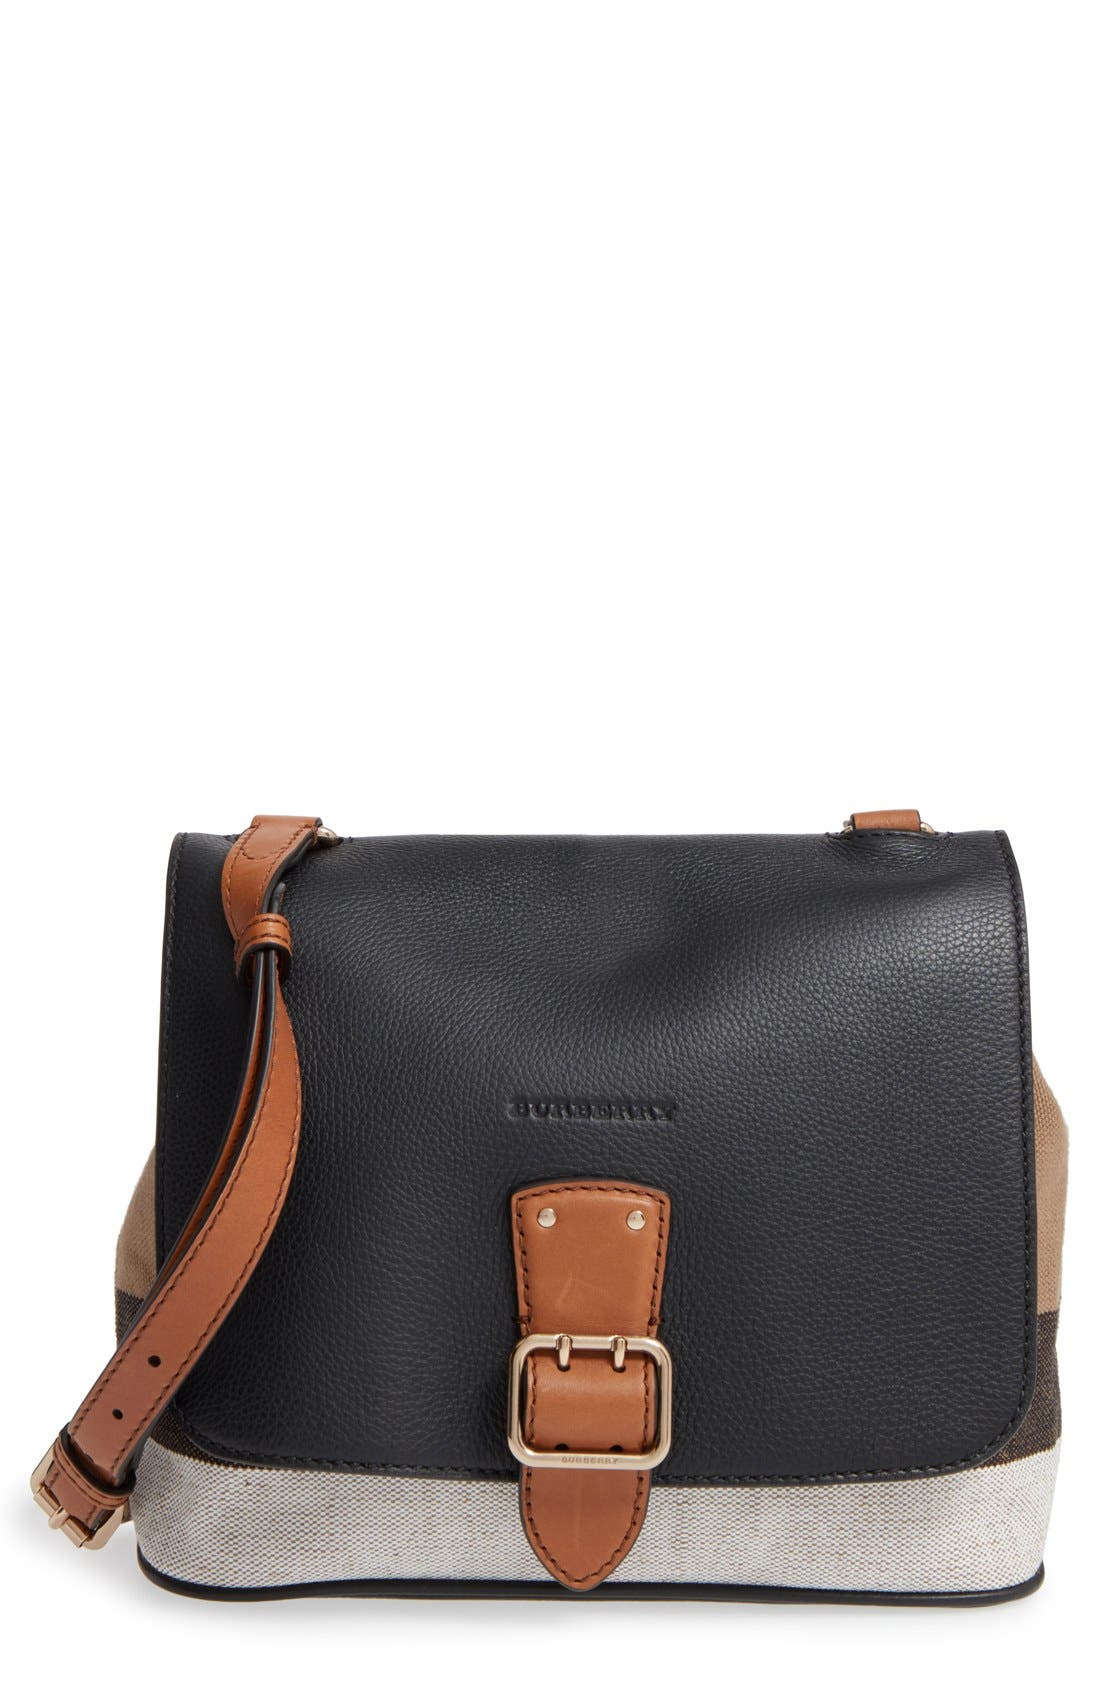 Main Image - Burberry 'Small Shellwood' Canvas & Leather Crossbody Bag